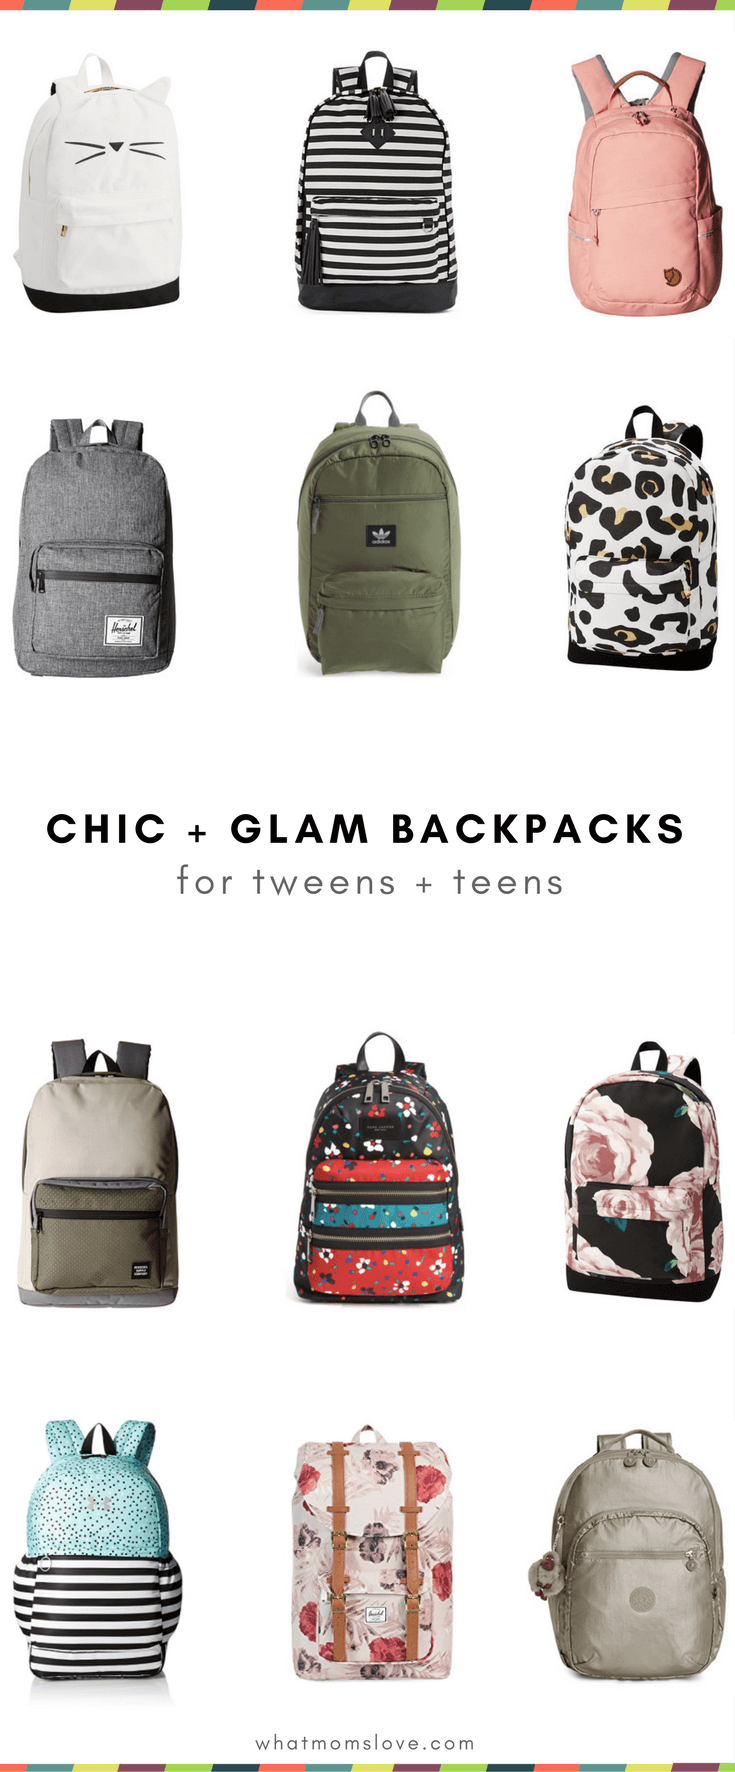 Best Backpacks for Tweens and Teens for Back to School - Chic Glamorous Minimalist